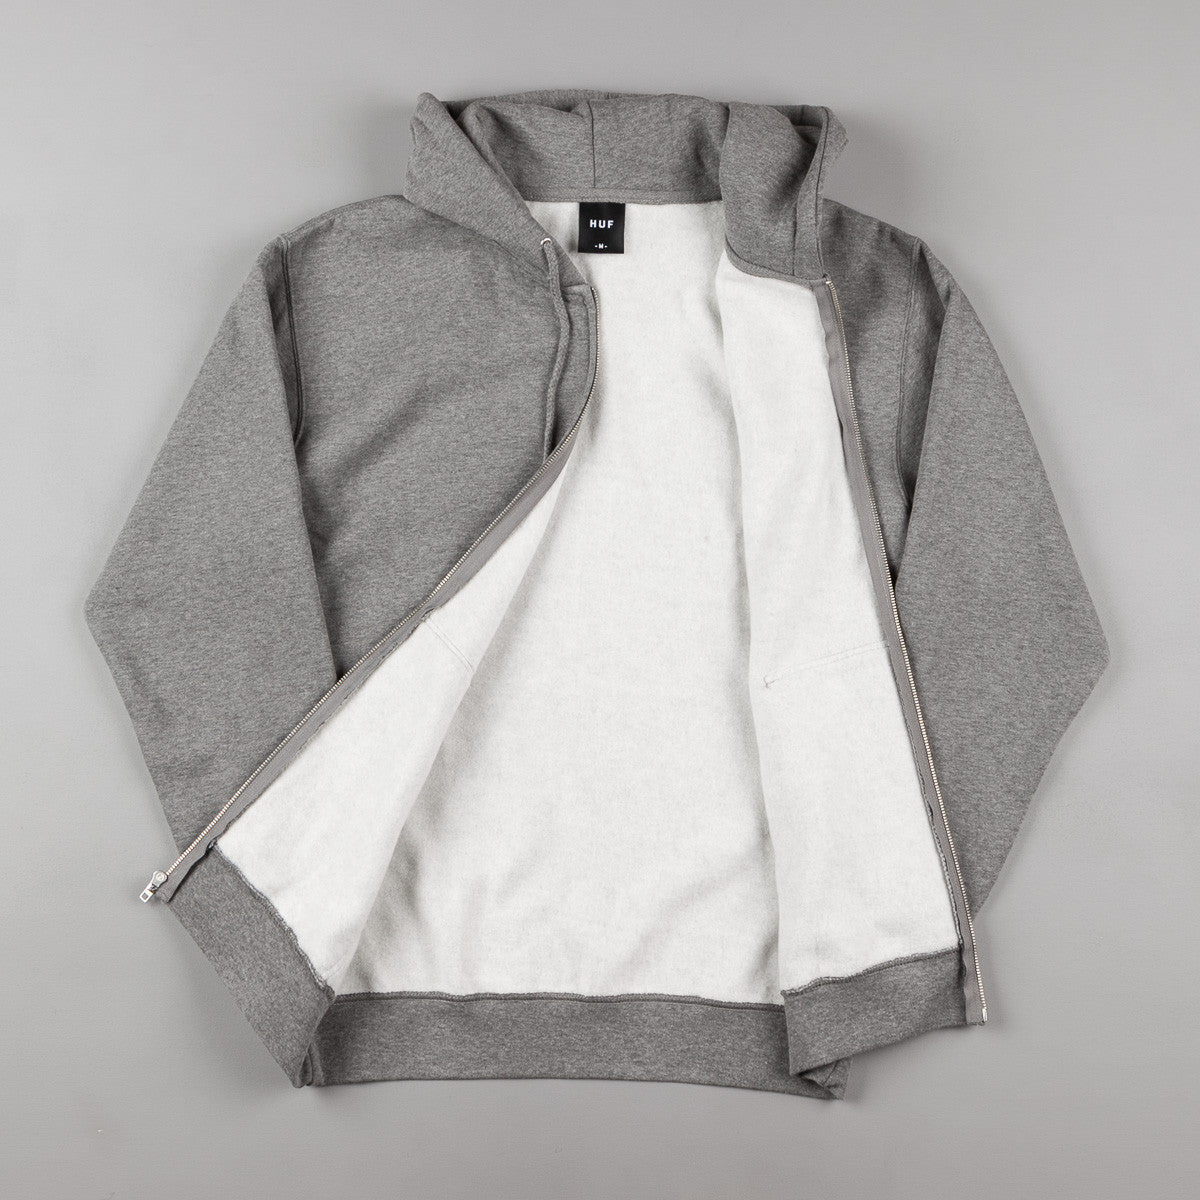 HUF Classic H Zip Up Hooded Sweatshirt - Grey Heather